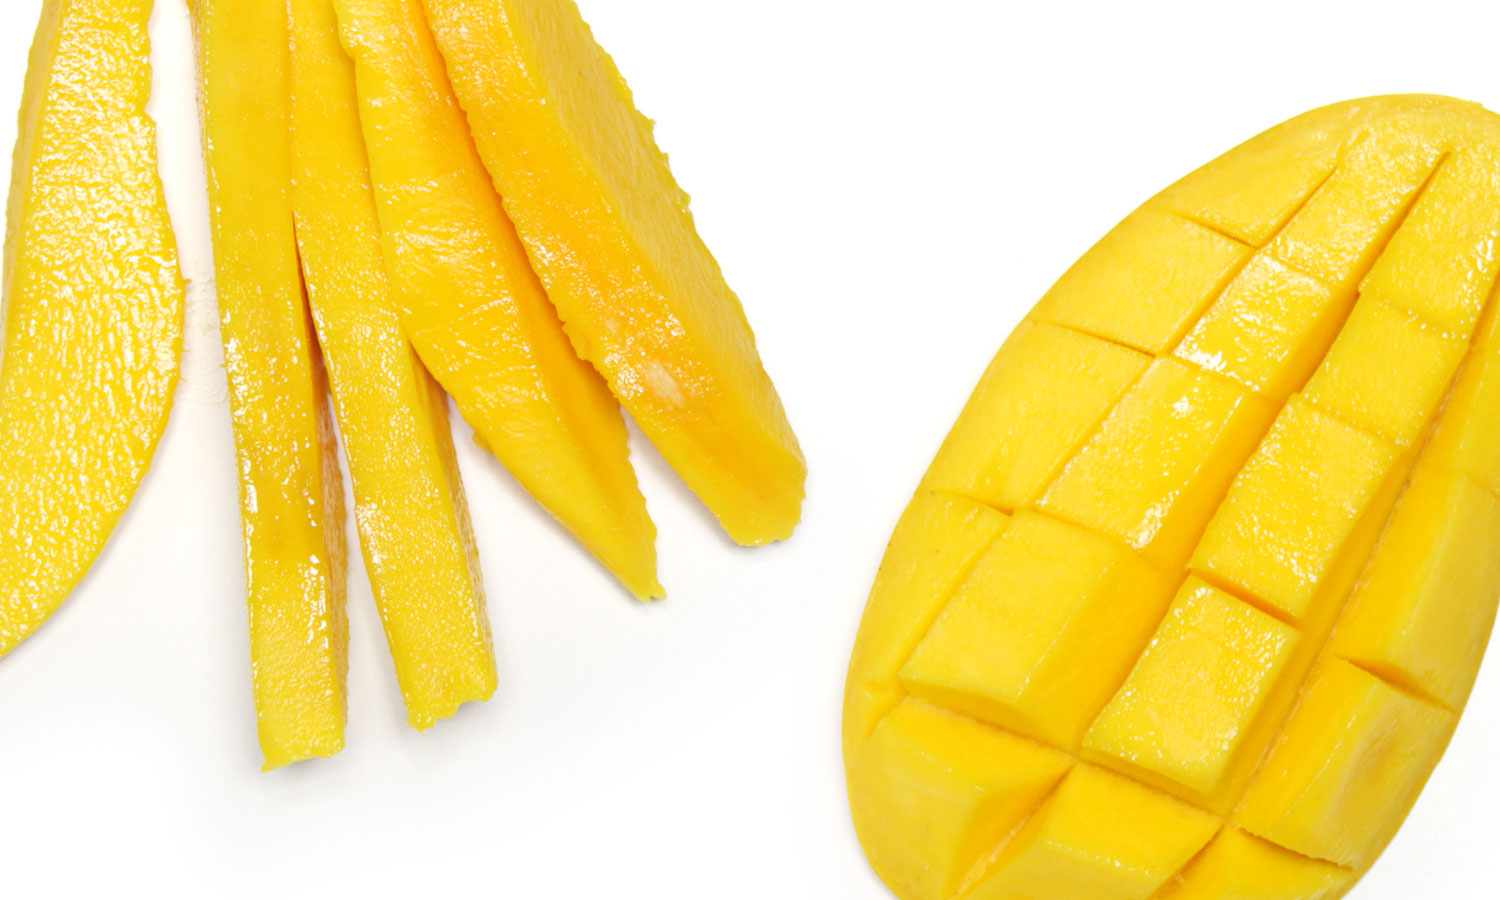 How to cut a mango in 7 steps or less video sharis berries blog method 2 slice and scoop ccuart Choice Image